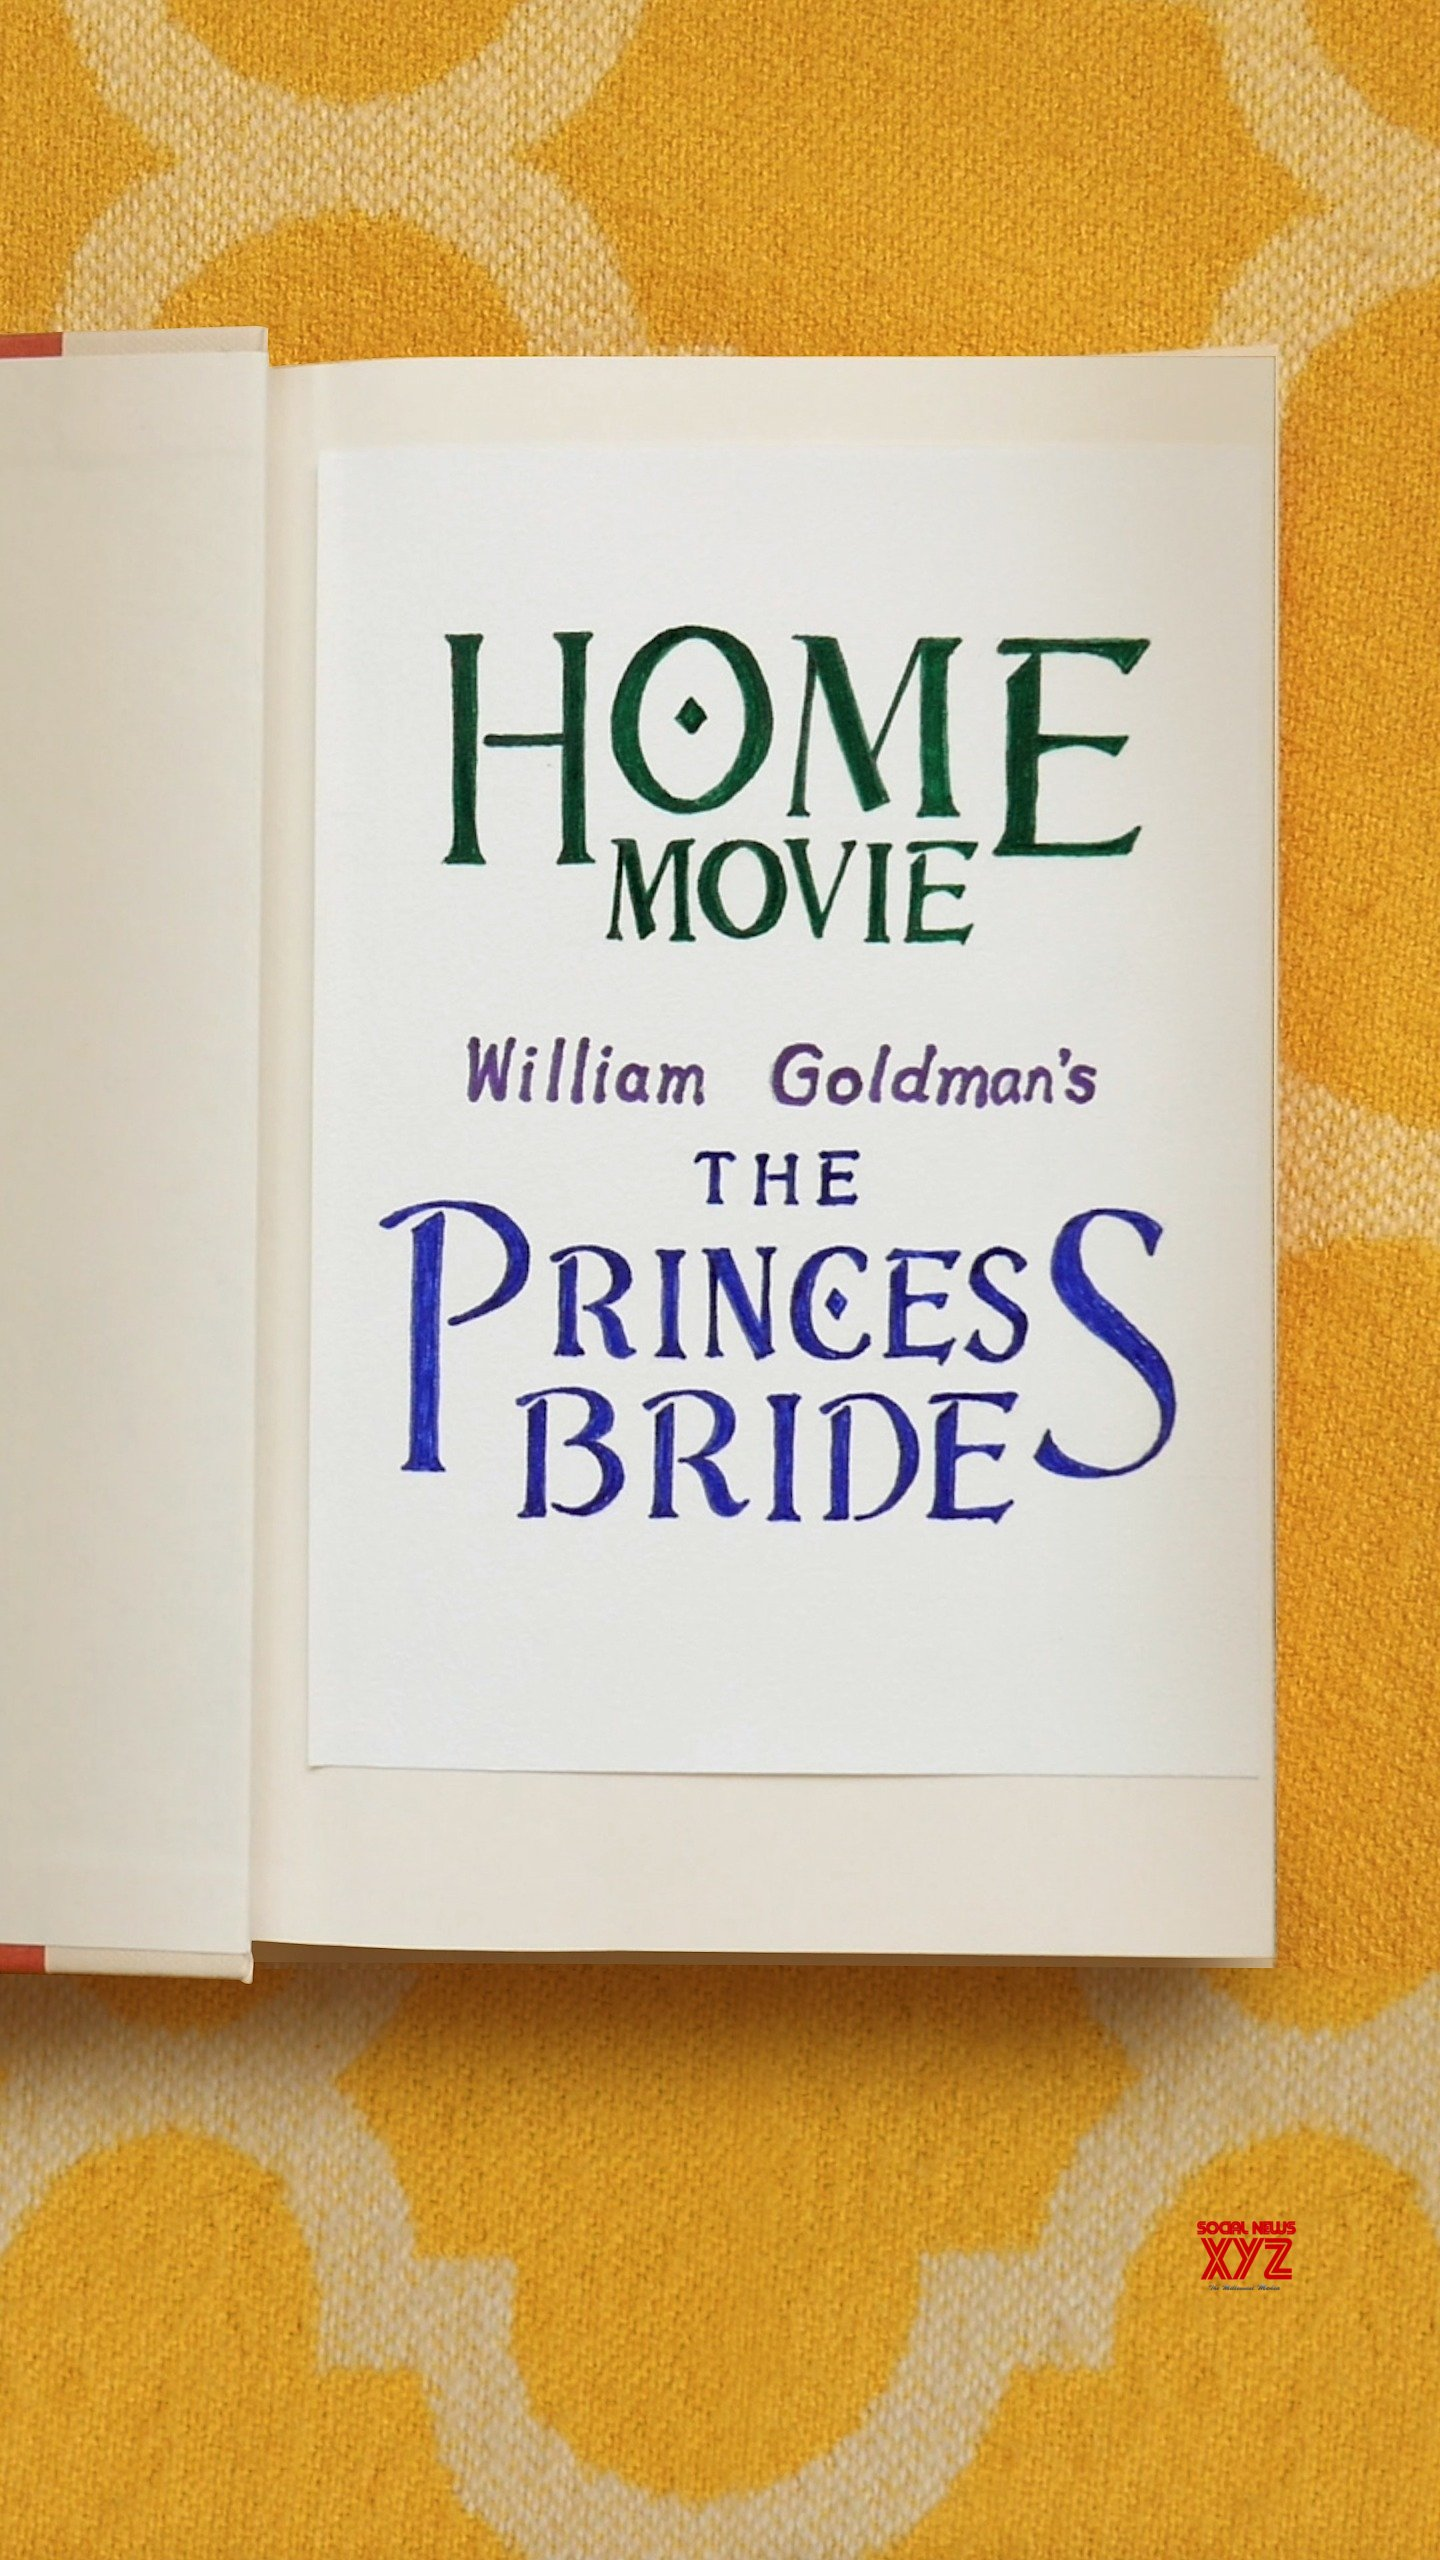 Home Movie: The Princess Bride Movie HD Poster And Stills